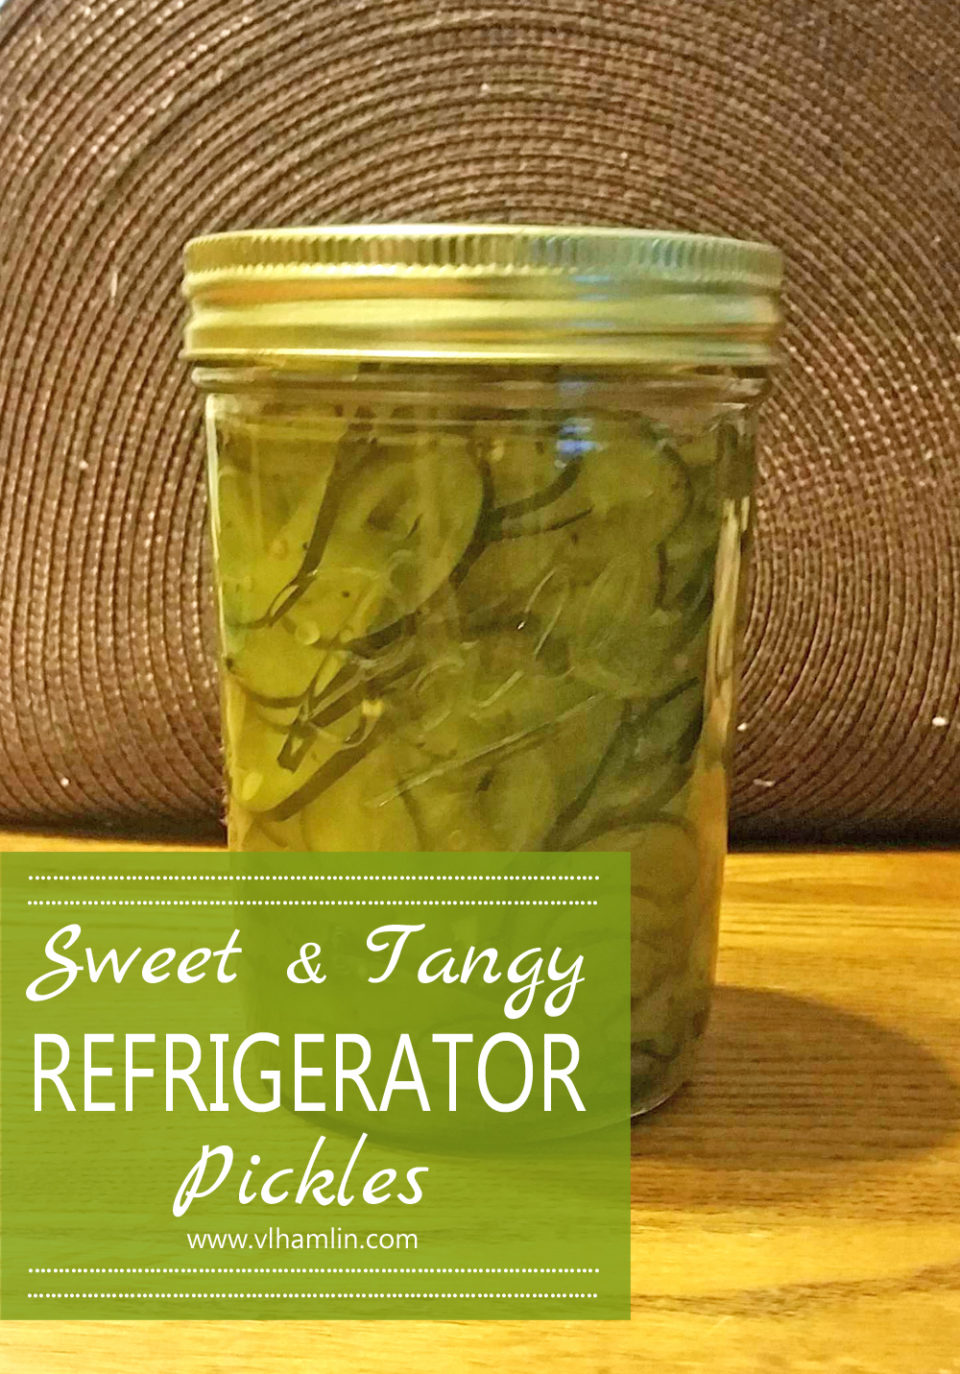 Sweet & Tangy Refrigerator Pickles 2